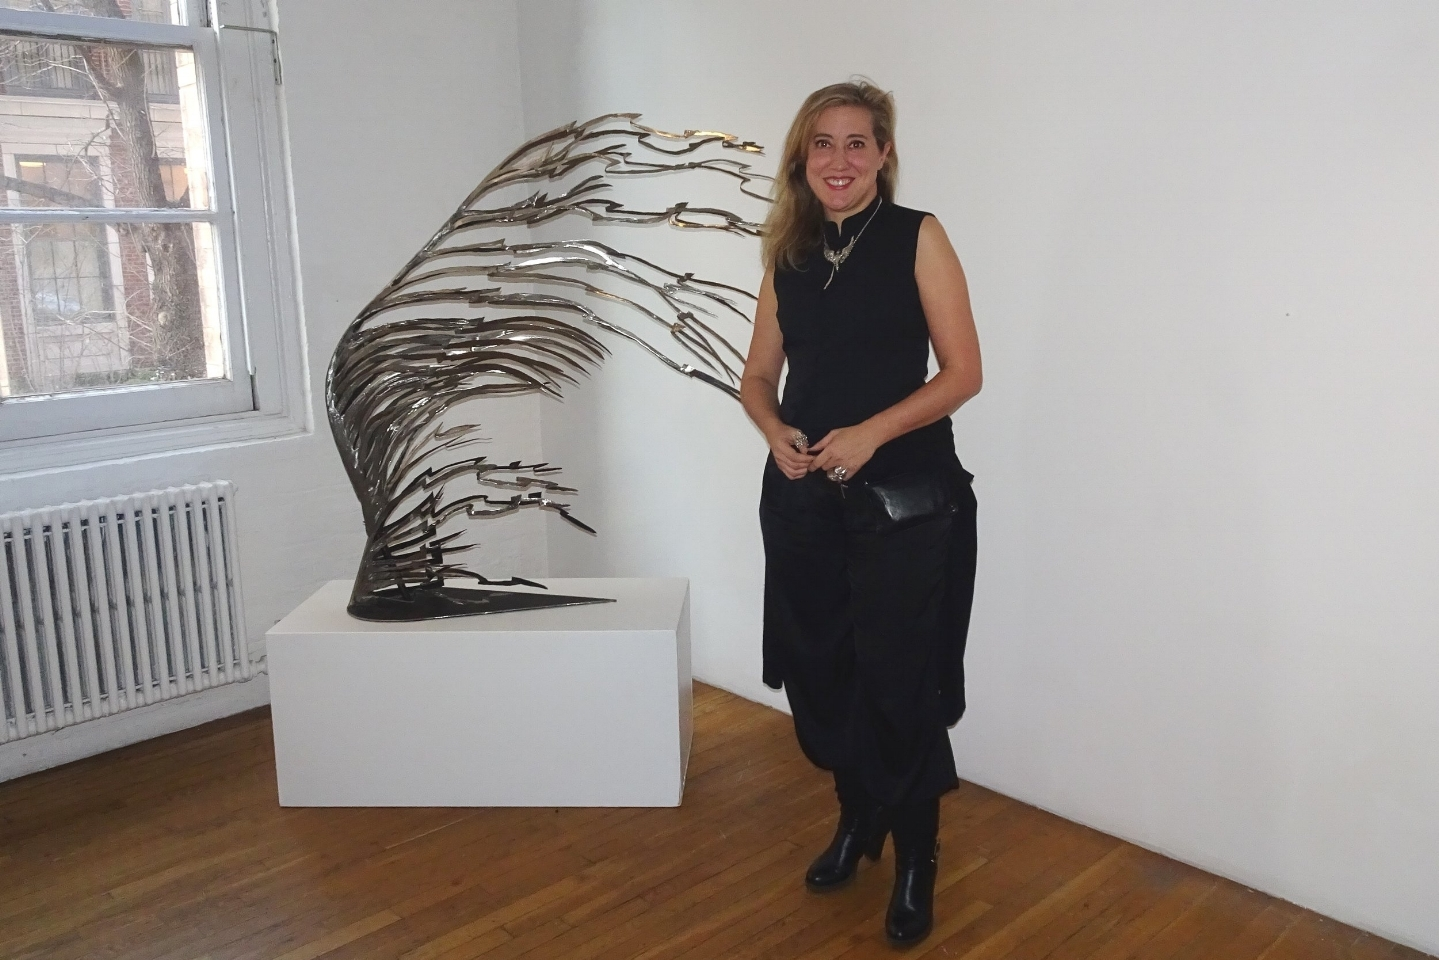 Caroline_Bergonzi_Currently-80_Sculptors-Guild_Sculptor_fine-art_New-york_09.JPG